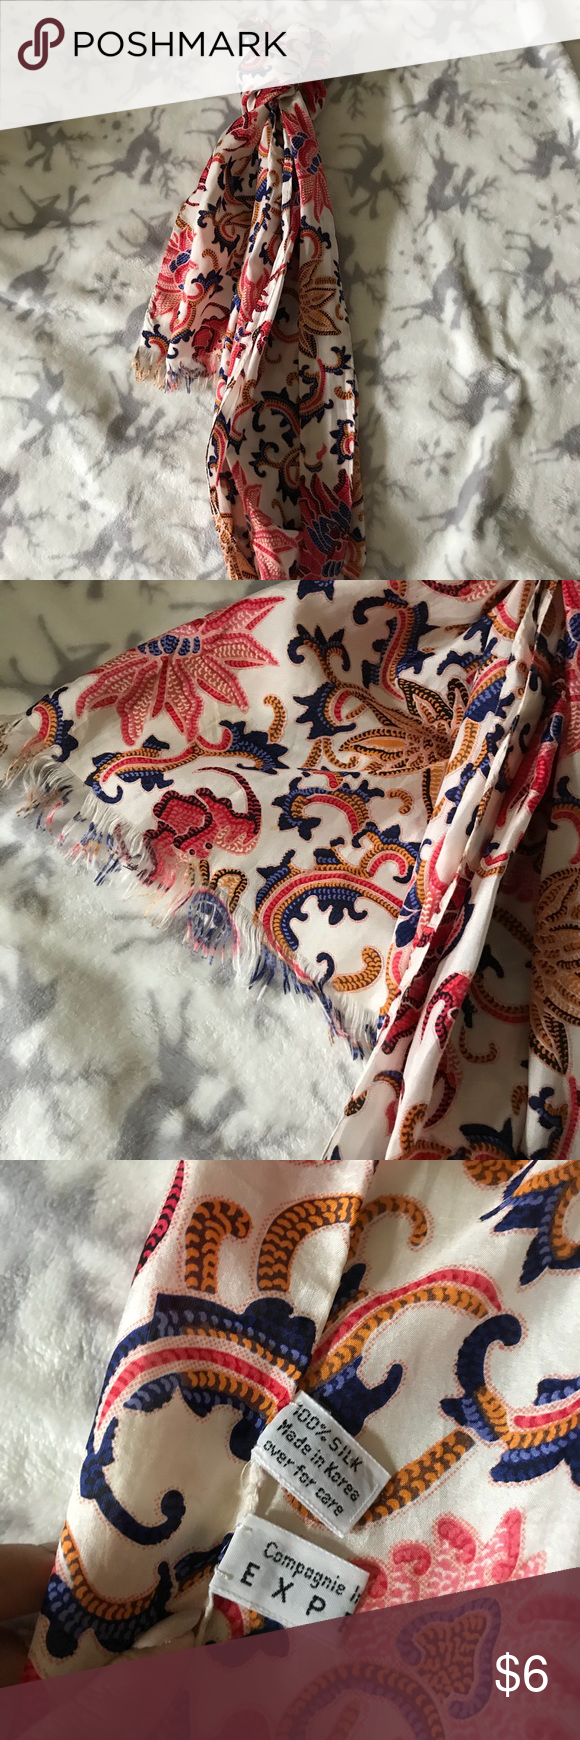 Express Silk Scarf Beautiful Scarf To Accessorize With Outfit Or In Bag Only Downfall Is The Hem On The Ends Of The Sca Cute Scarfs Scarf Accessory Silk Scarf